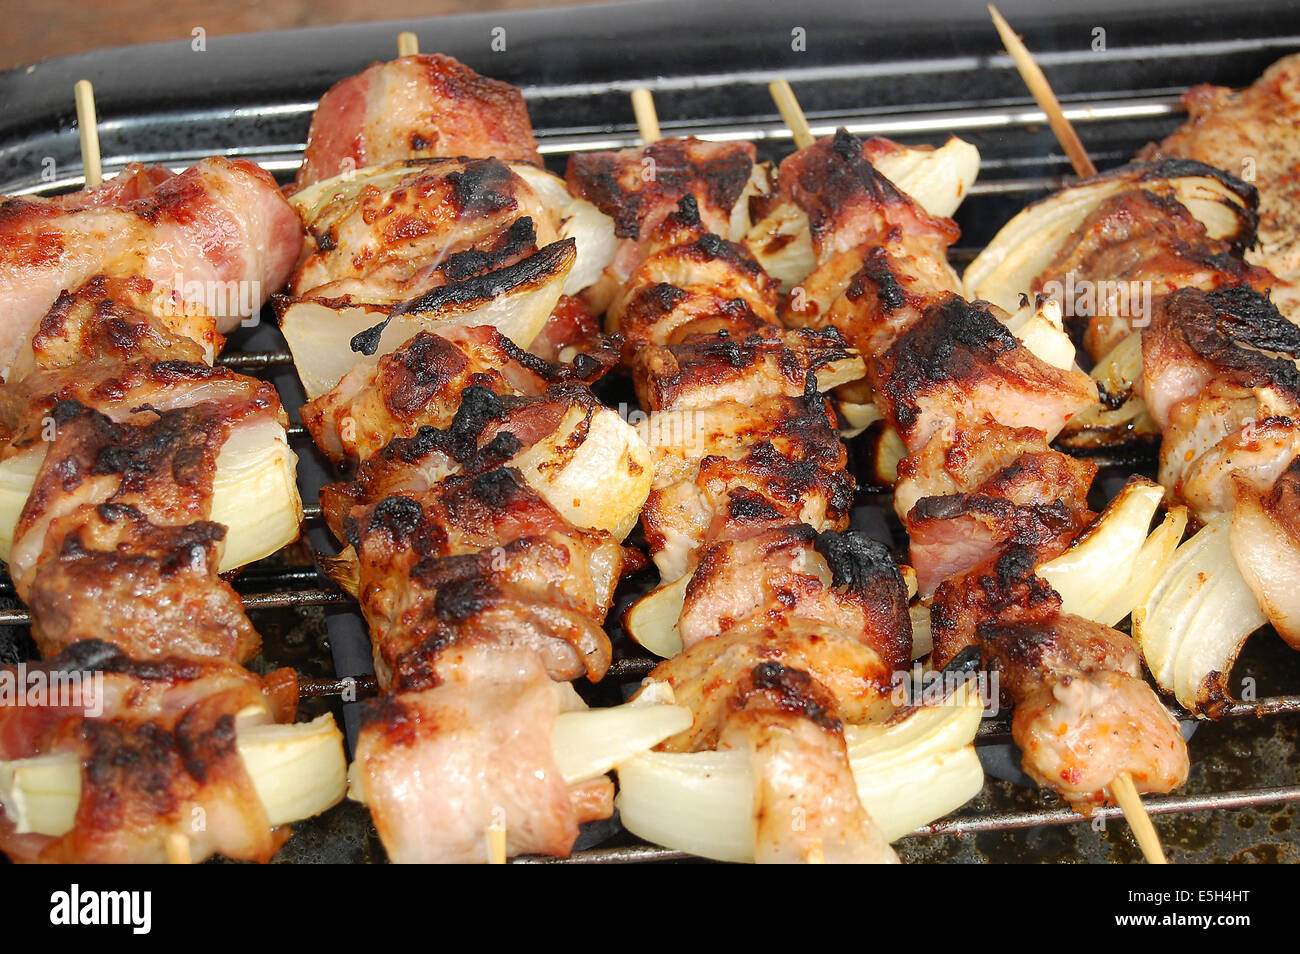 Grilled meat, prepared for a family lunch - Stock Image